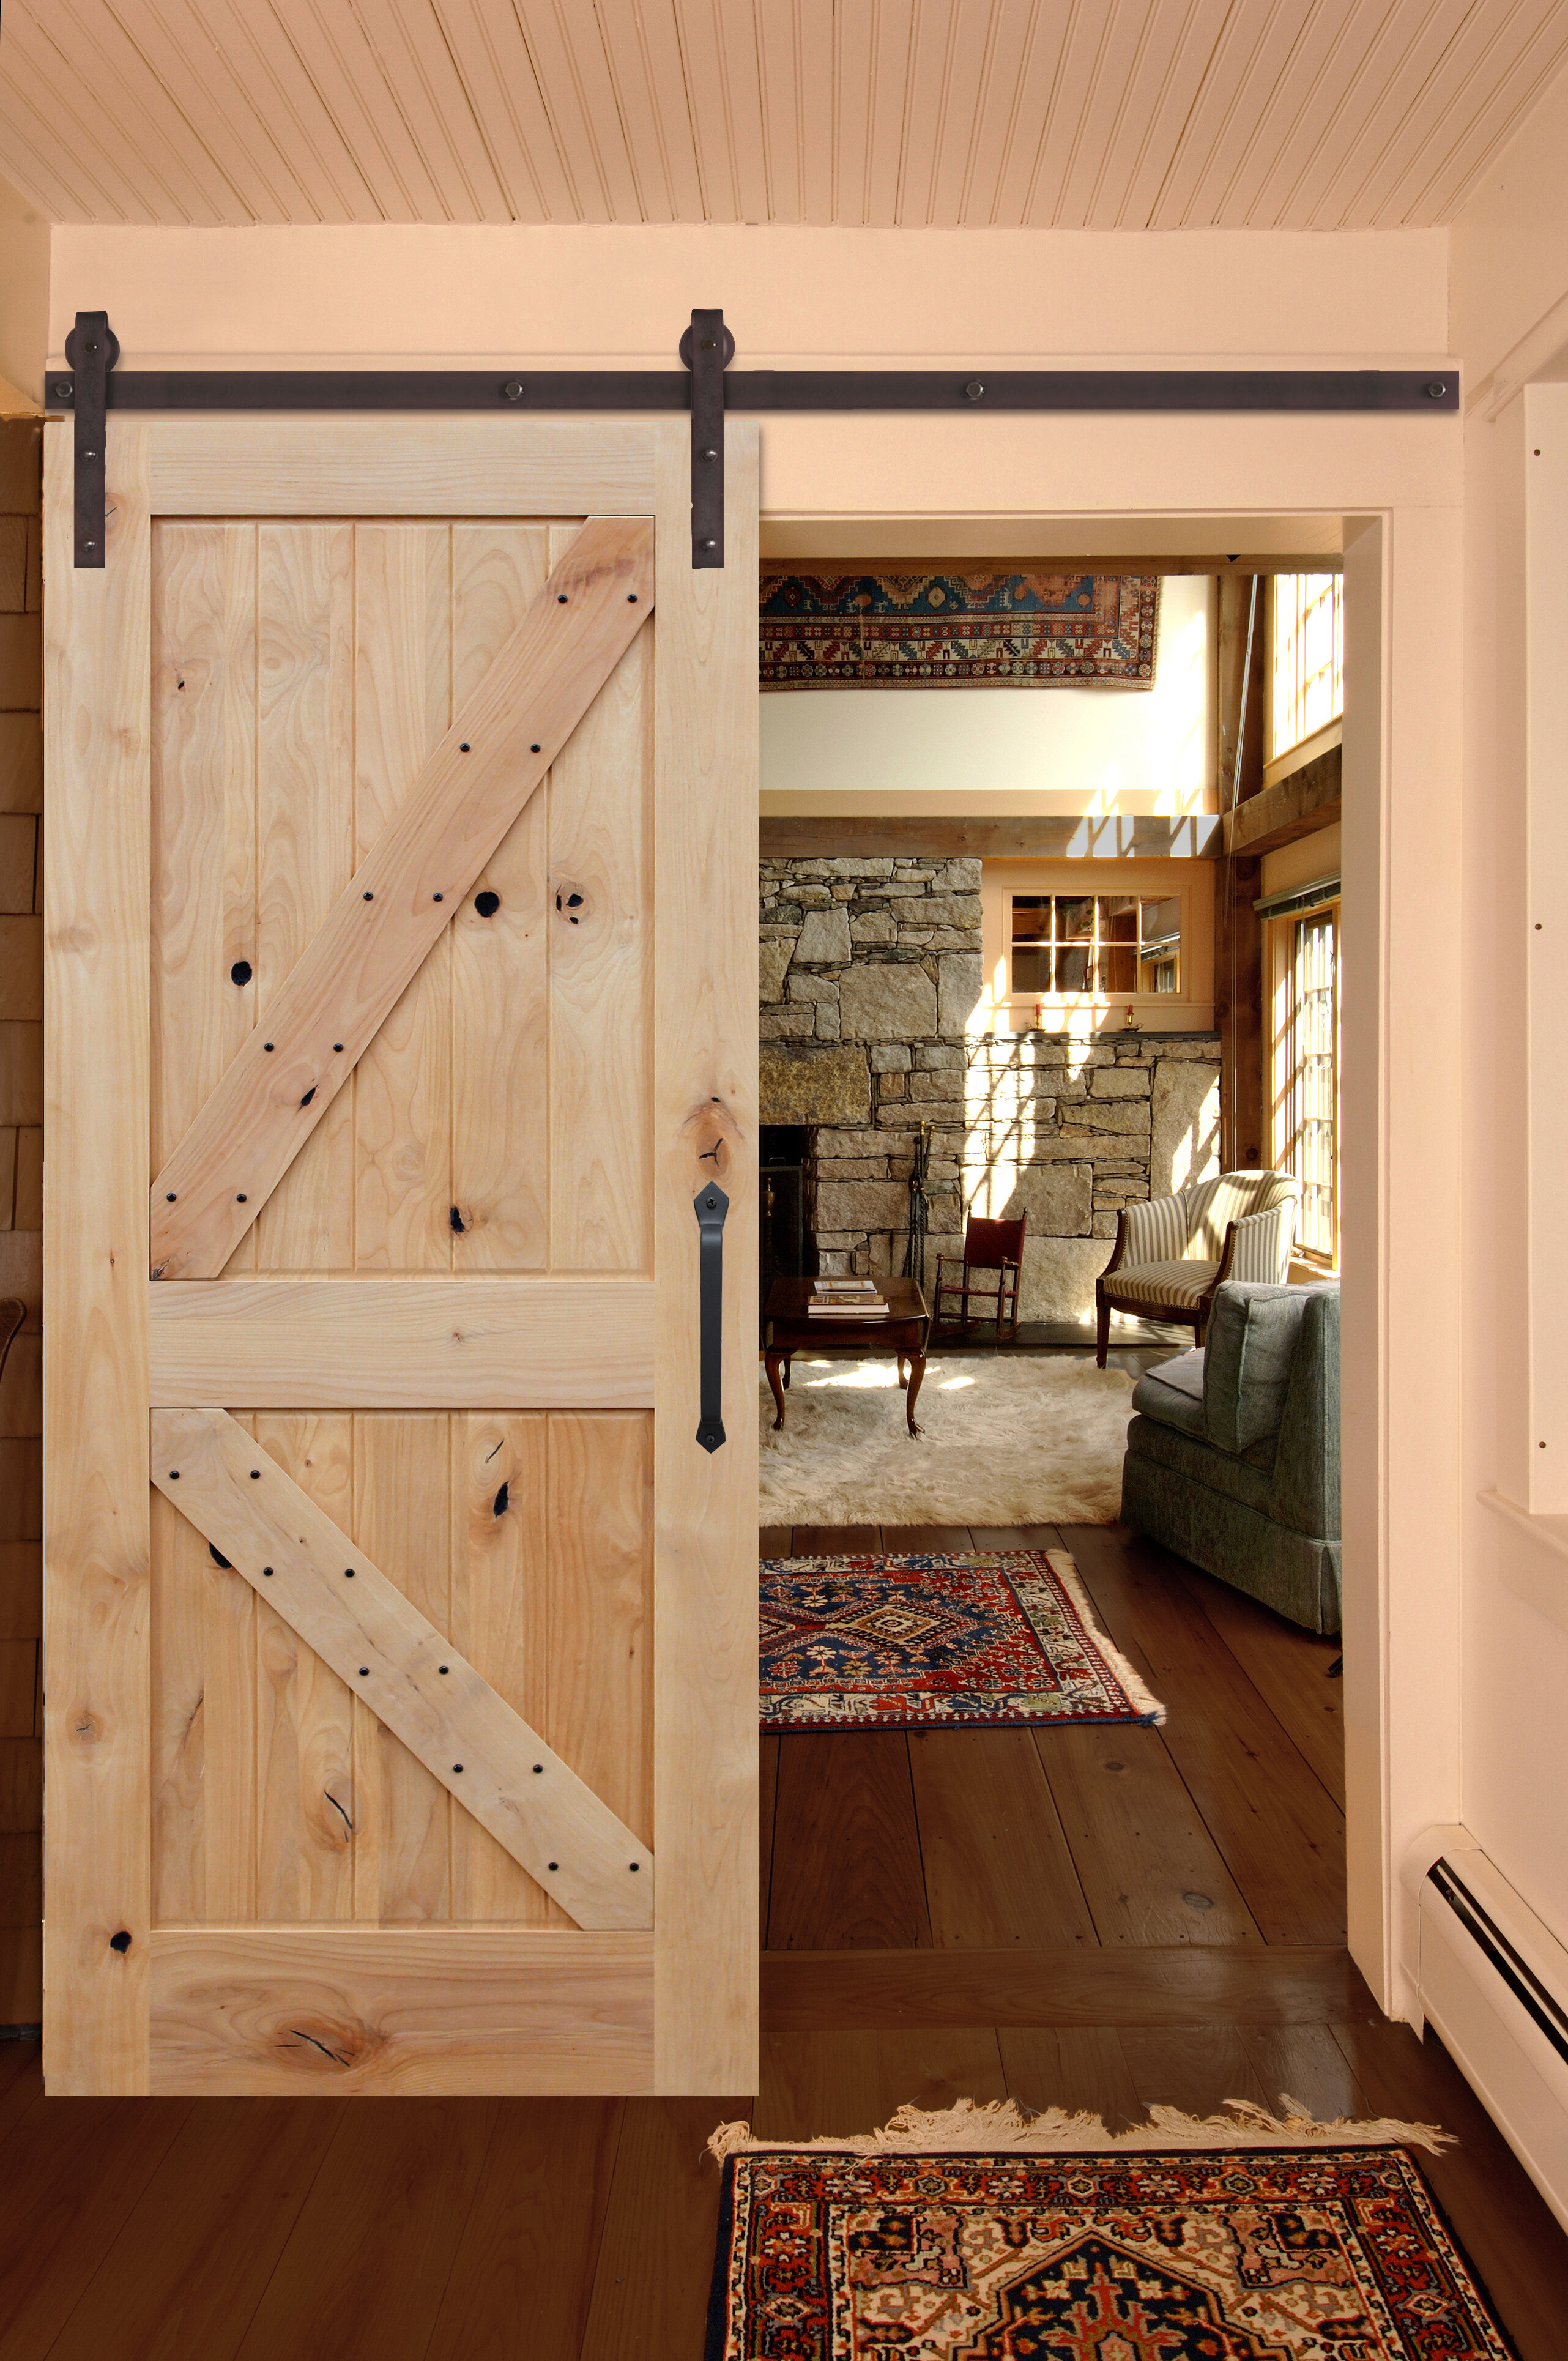 Creativeentryways Paneled Wood Unfinished Rustic Knotty Alder Barn Door With Installation Hardware Kit Wayfair